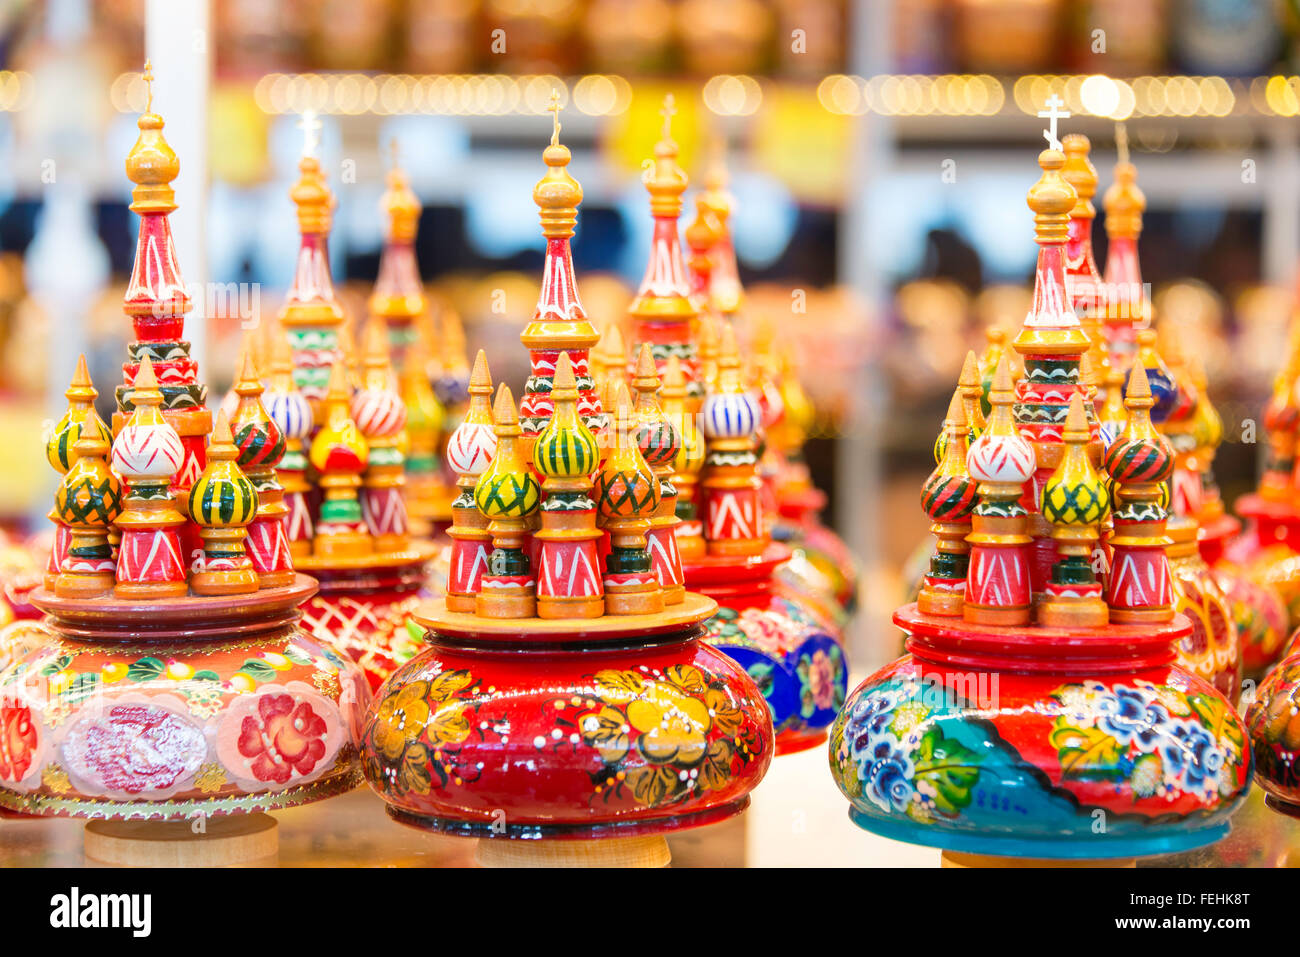 St. Basil's Cathedral Russian music boxes, Saint Petersburg, Northwestern Region, Russian Republic - Stock Image